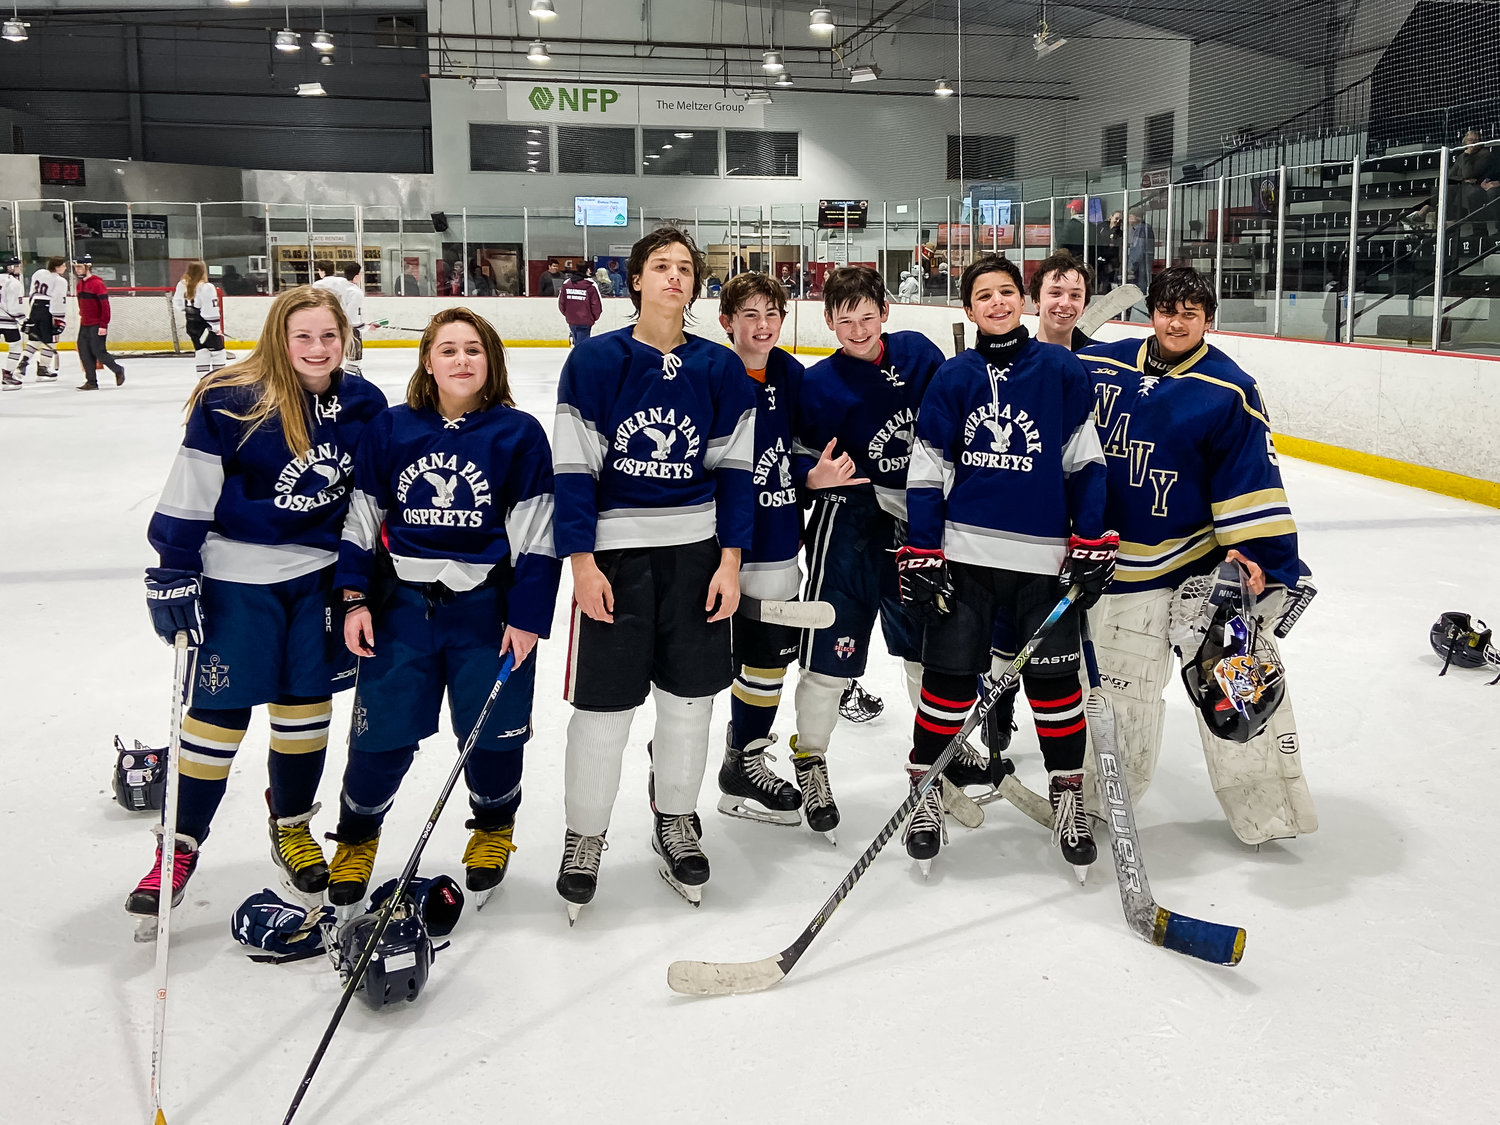 Severna Park Osprey eighth-graders (l-r) Mikaila Daly, Taylor Gruppuso, Luke Cobb, Dillon McConnell, Sam Testerman, Ryan Phelan, Sam Gillespie and Jagan Som completed their final season of middle school ice hockey this winter.